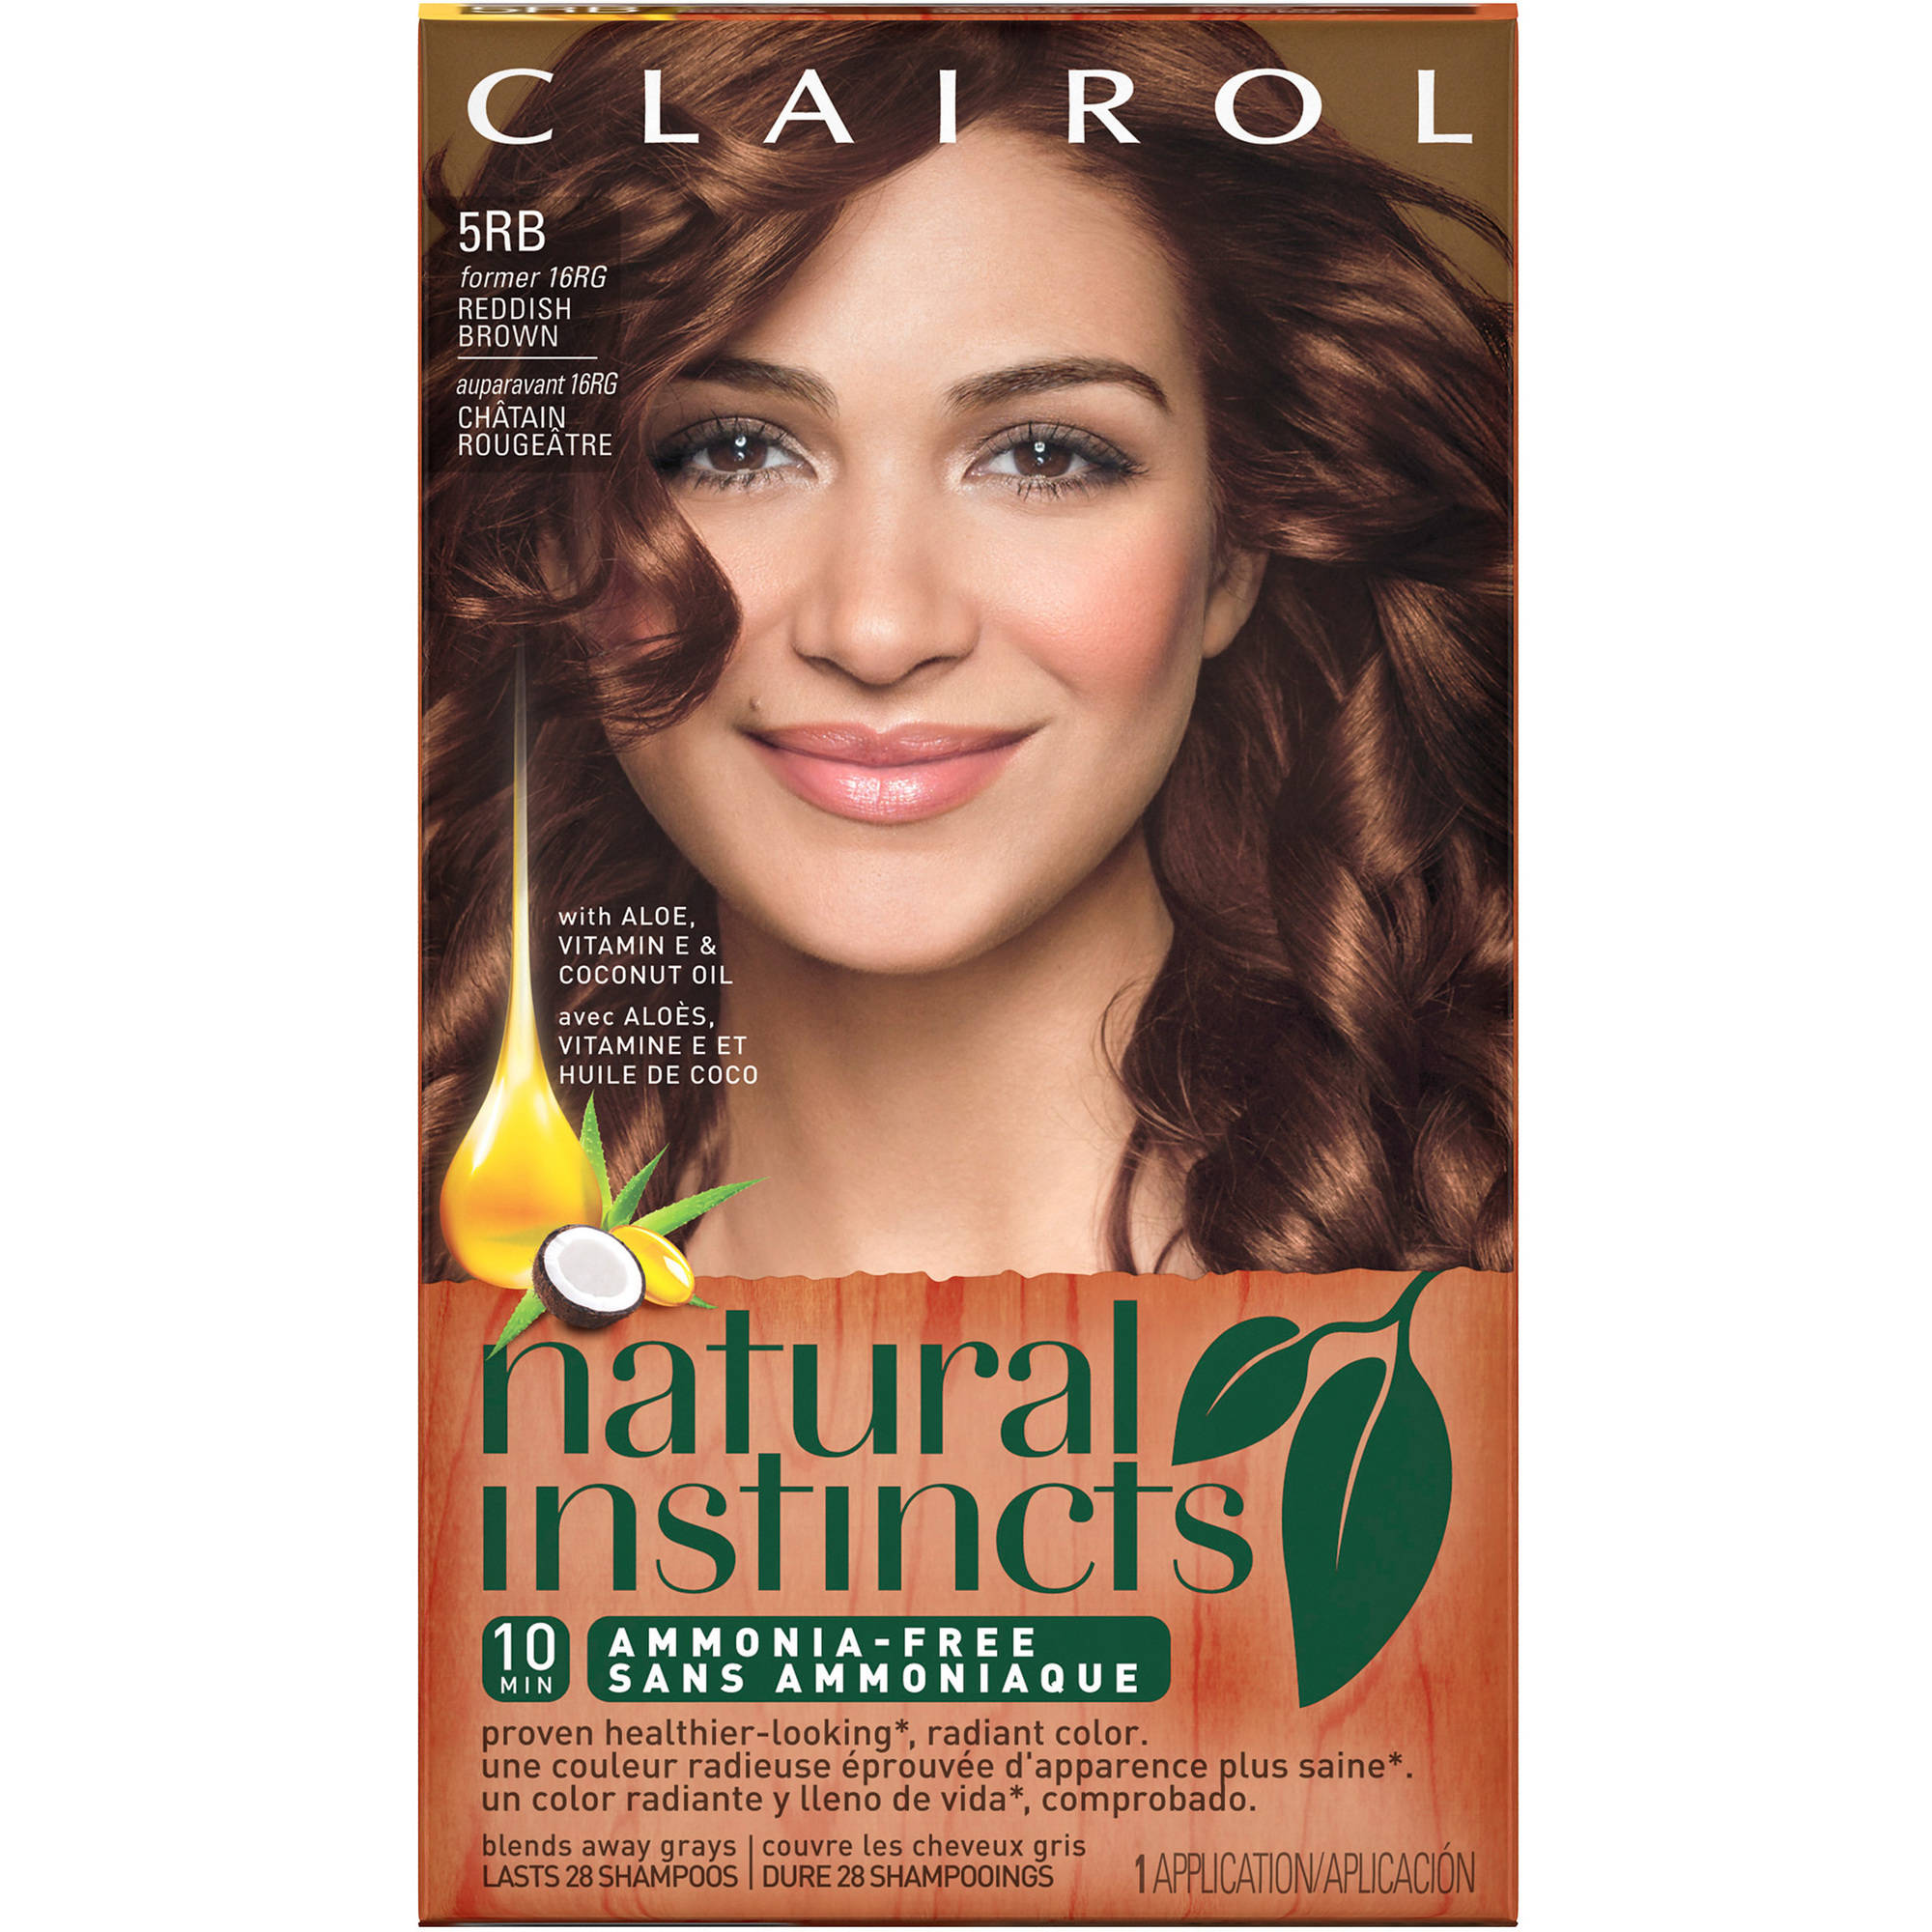 Clairol Natural Instincts, 5RB / 16RG Sedona Sunset Reddish Brown, Semi-Permanent Hair Color, 1 Kit